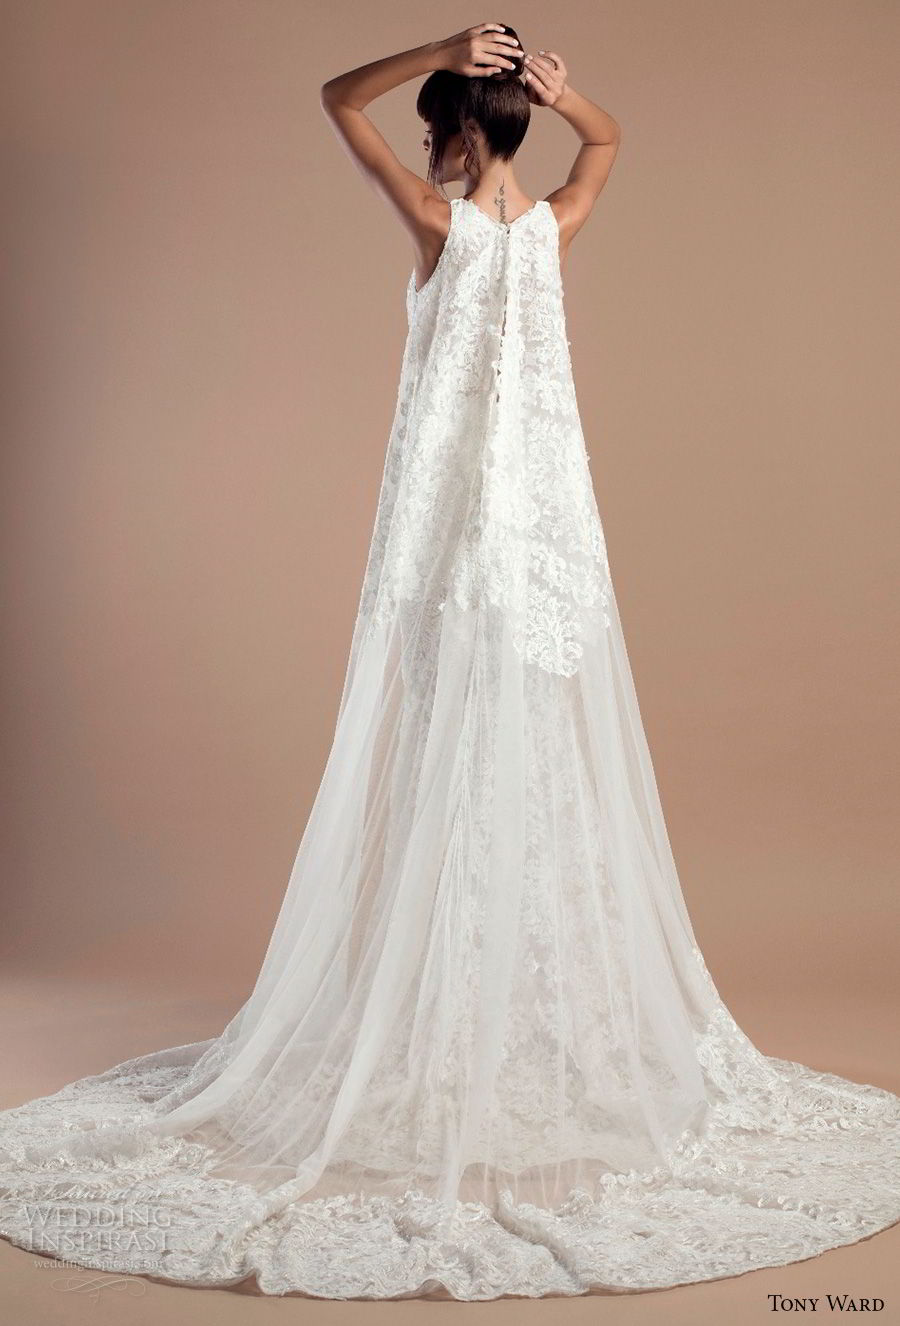 Tony ward 2018 wedding dresses wedding inspirasi for Wedding dress with cape train